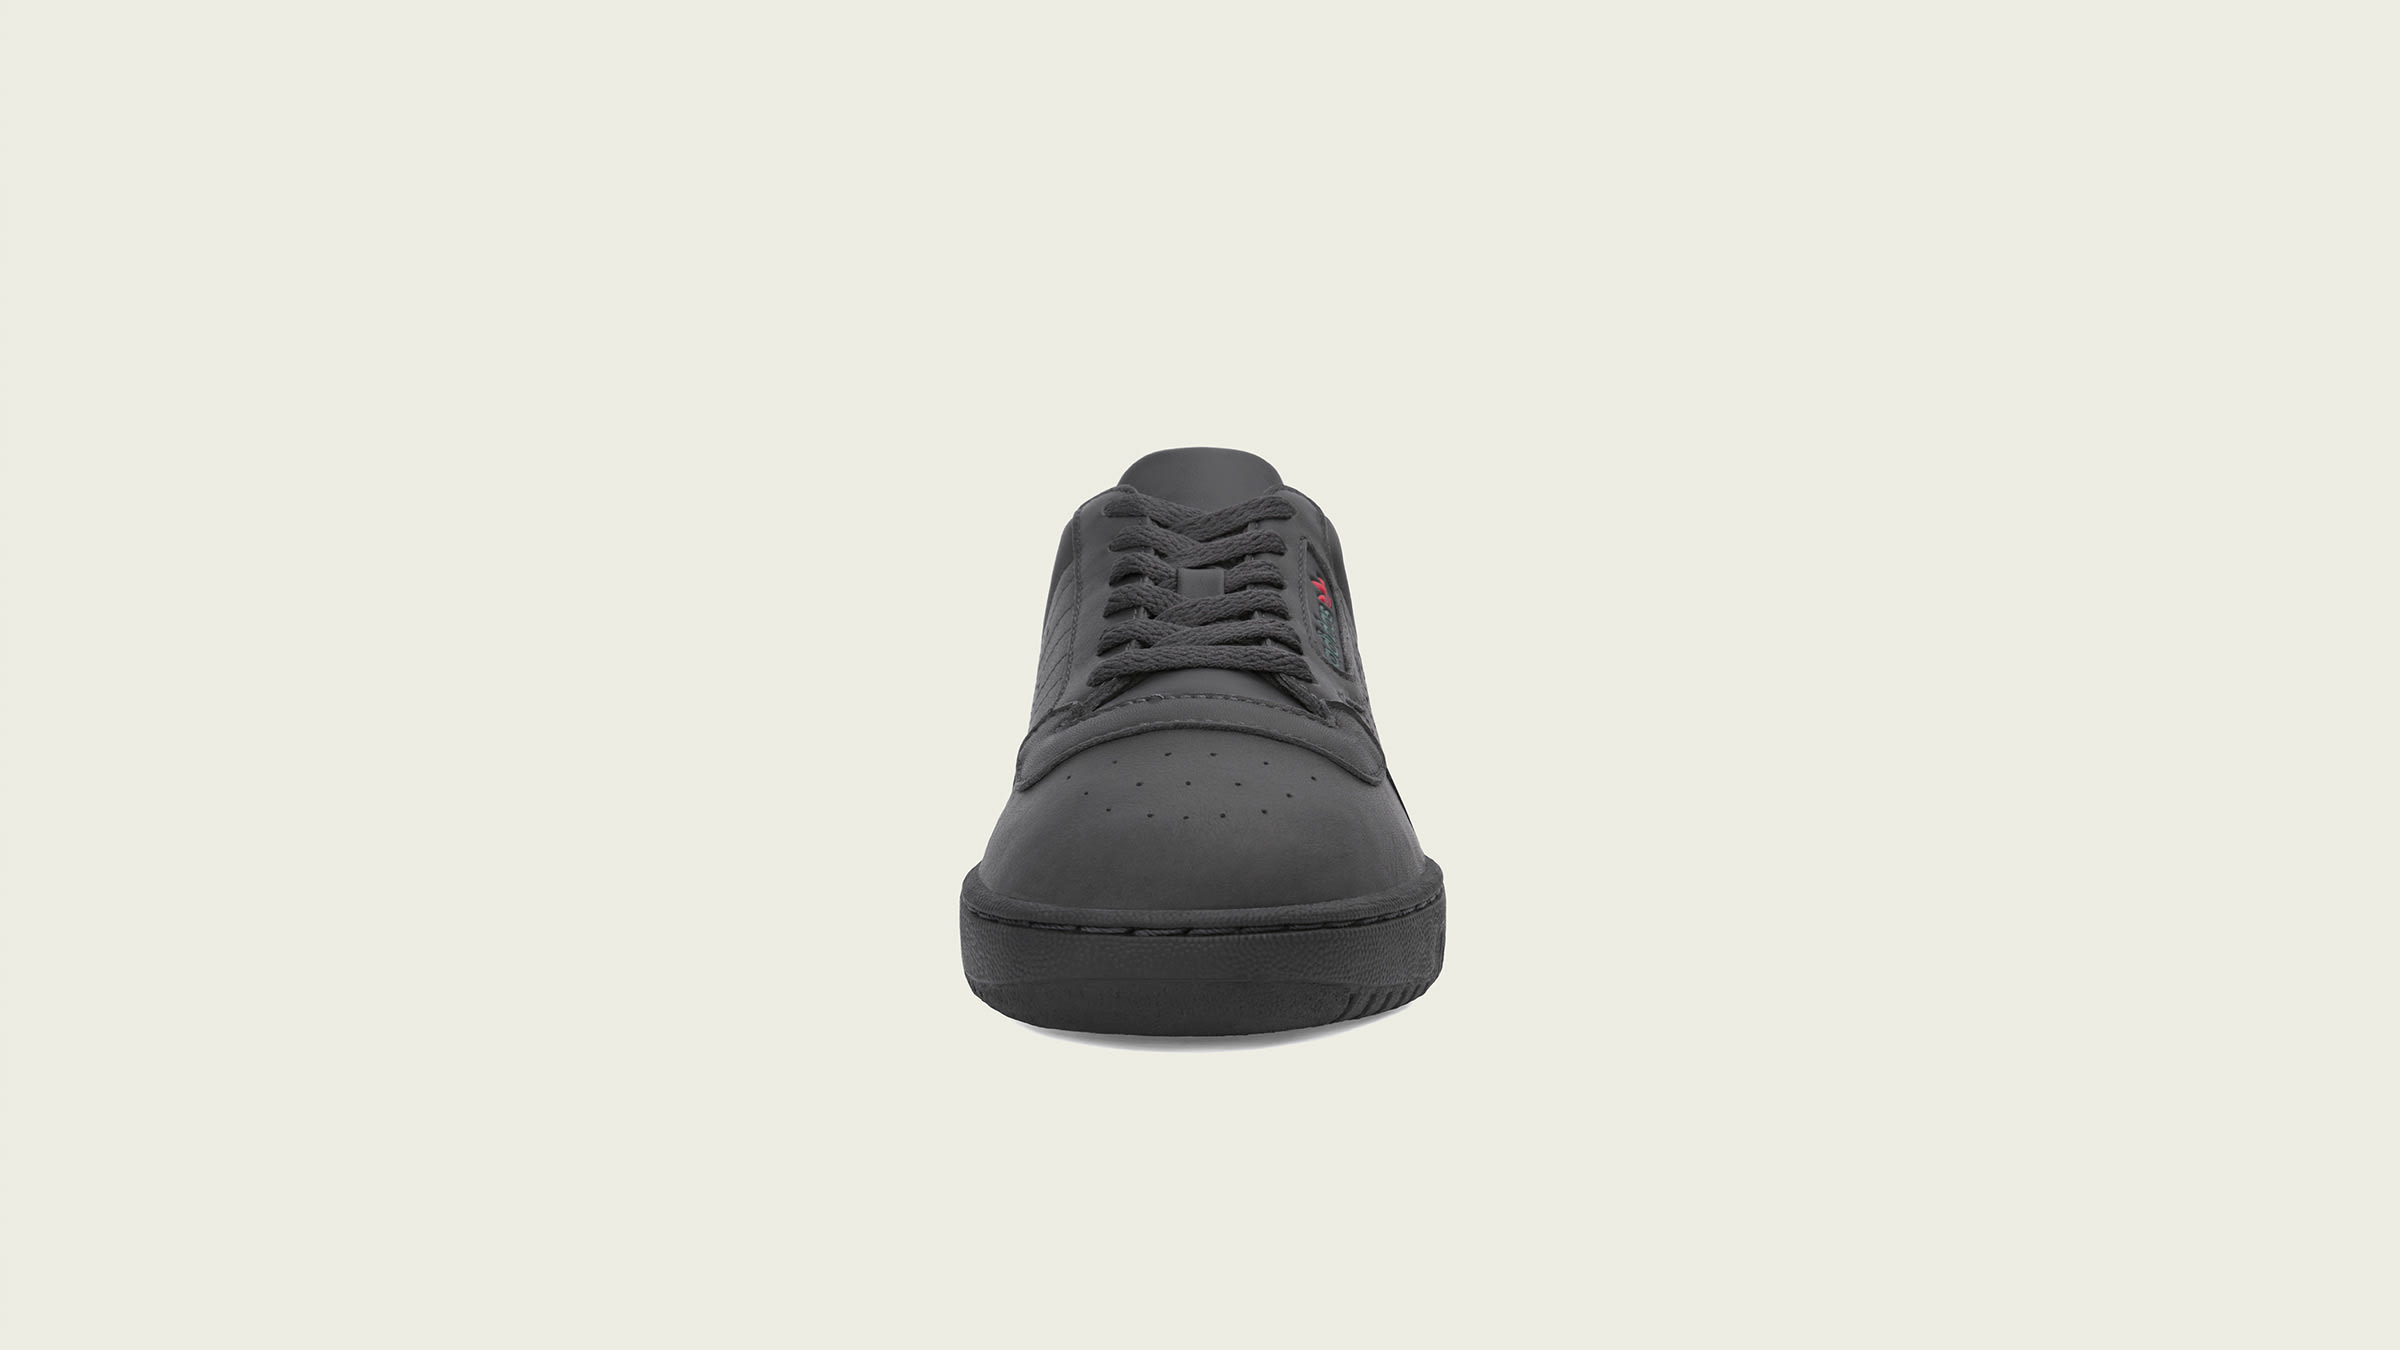 Yeezy Powerphase. Core Black£89. Yeezy does it yet again cbe6a736c